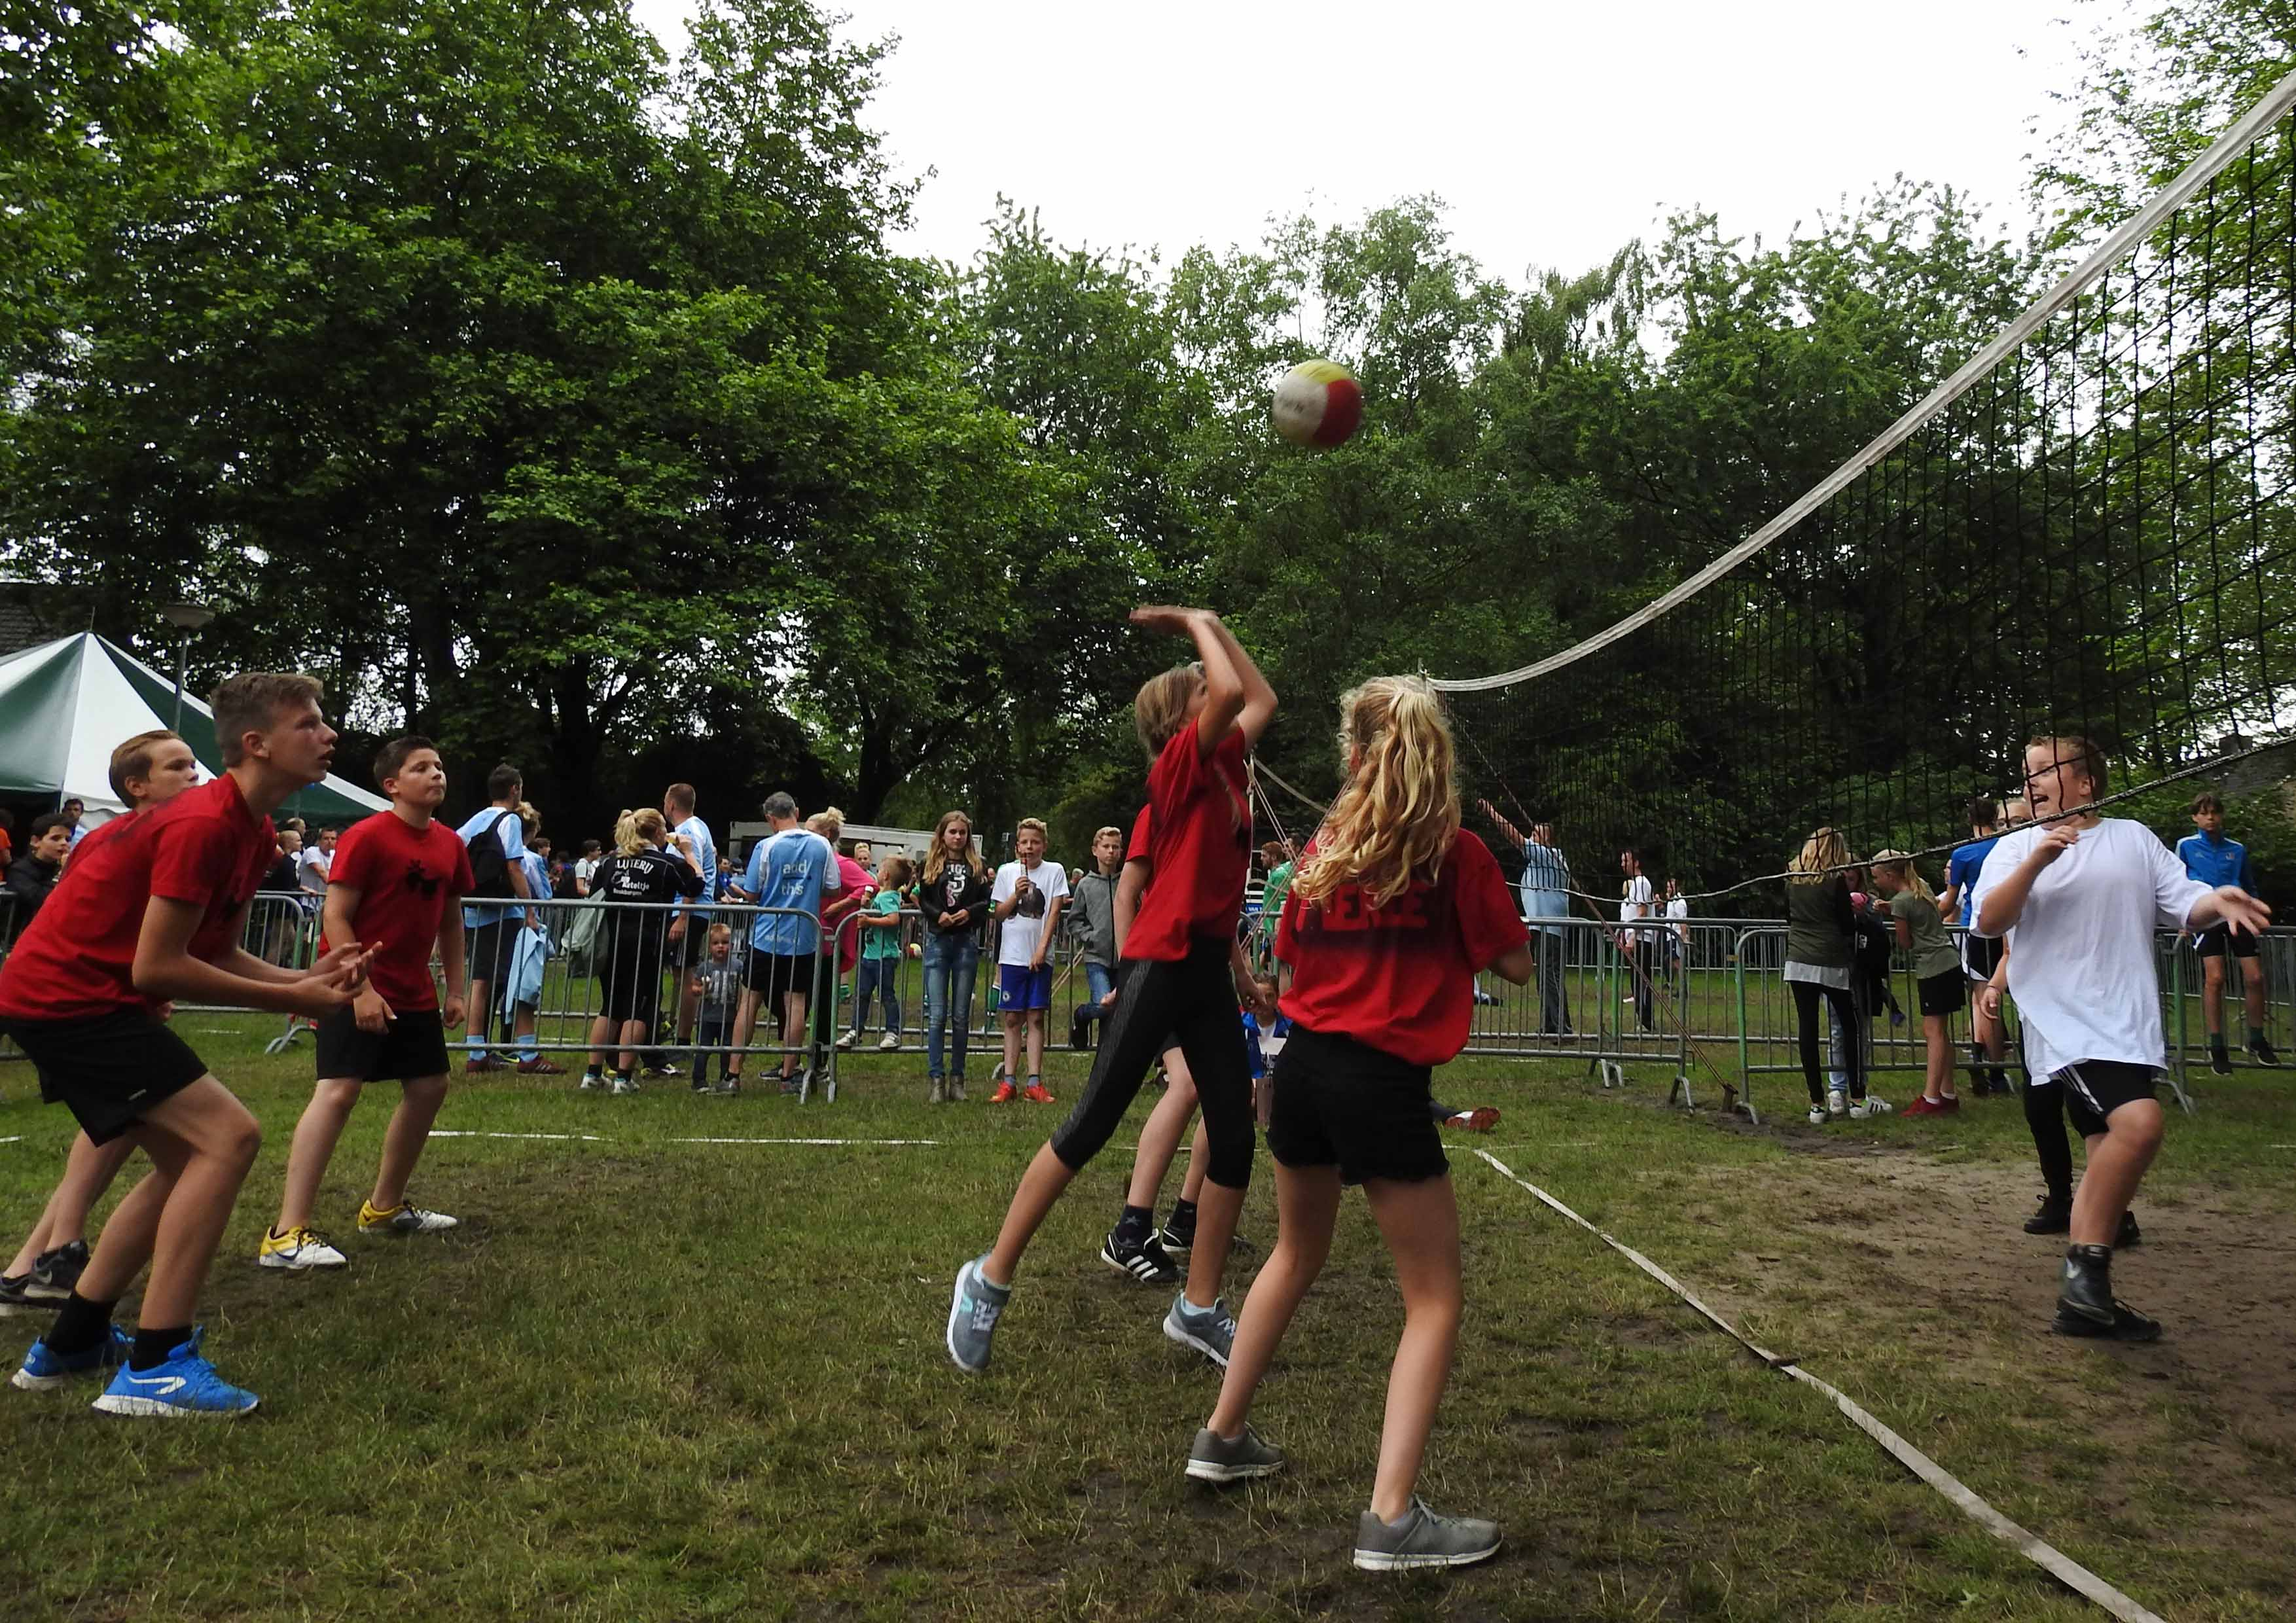 2017-06-29_BB_Straatvolleybal (11)